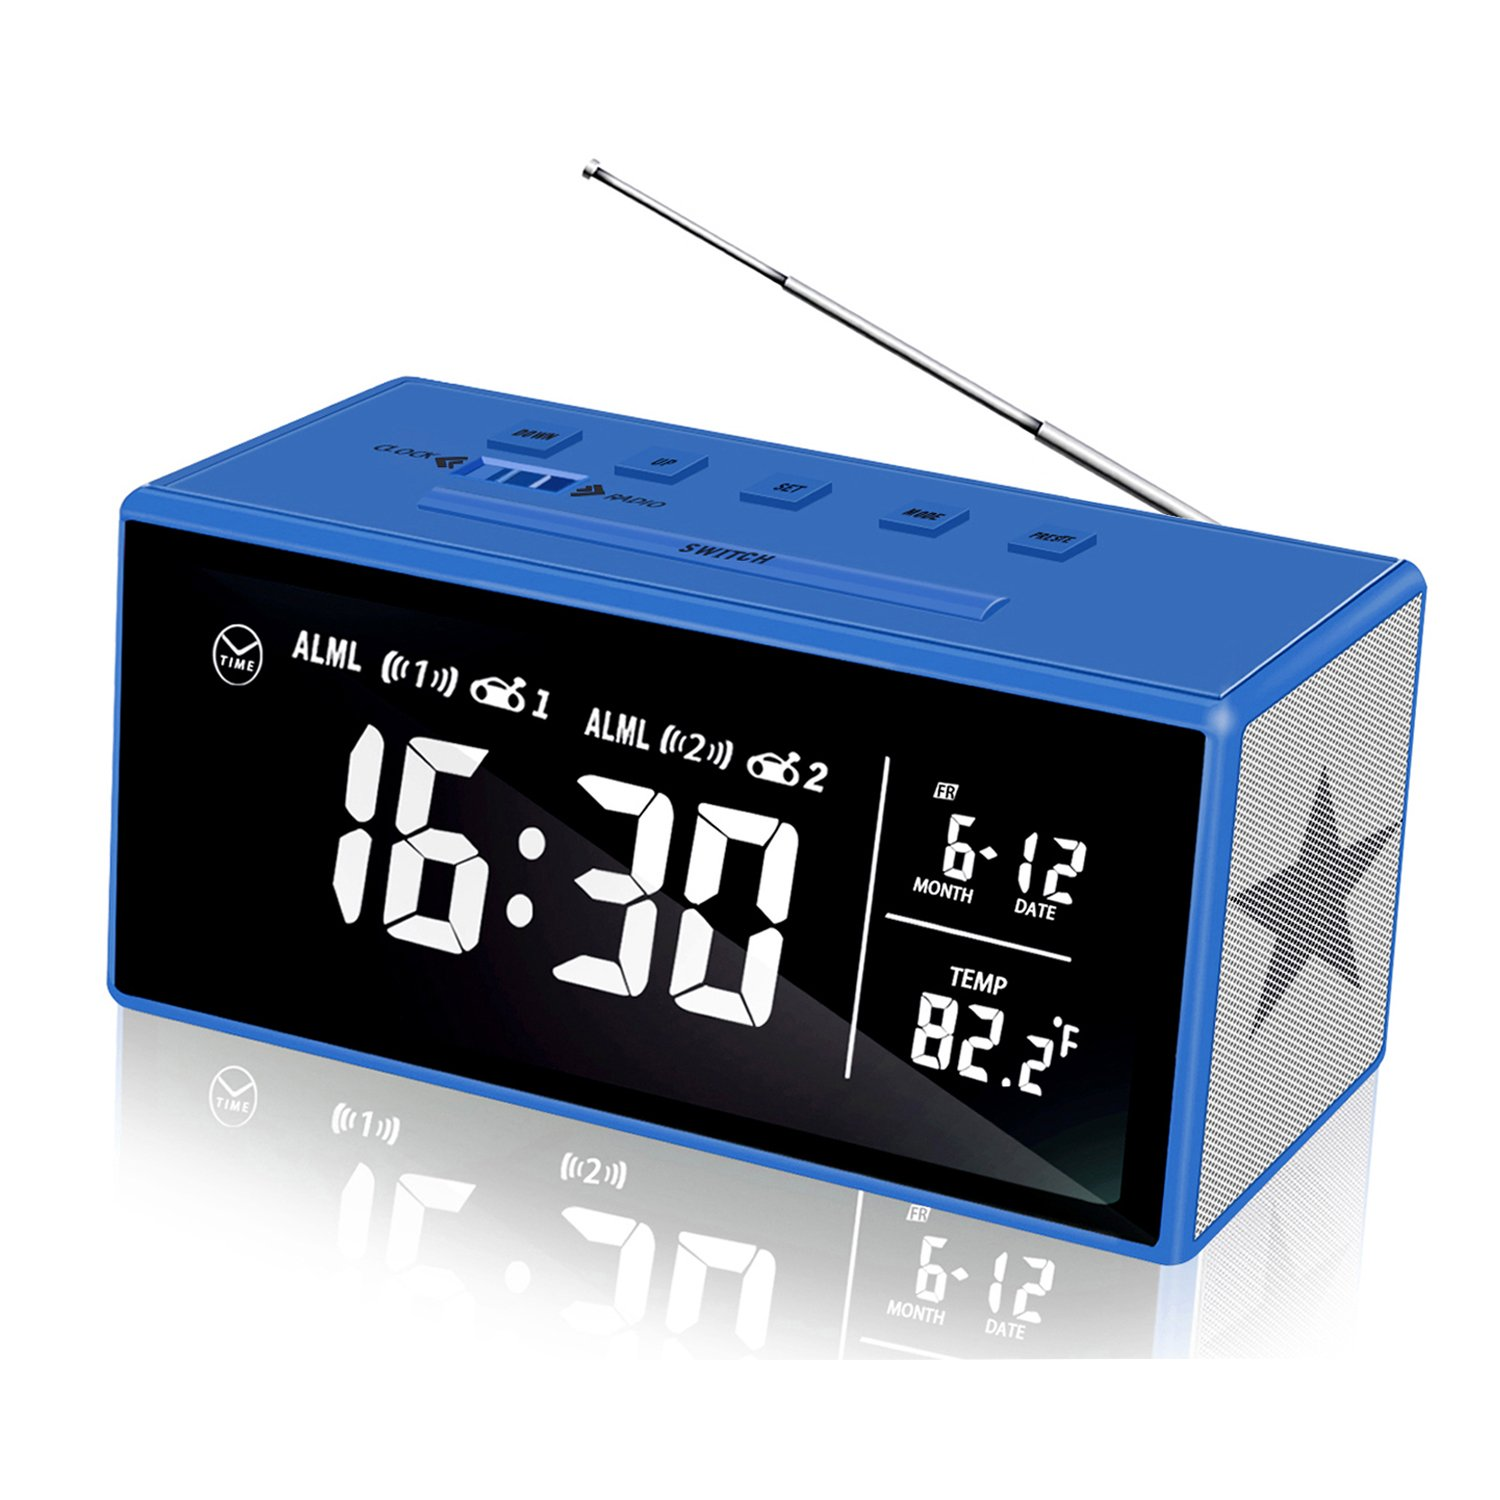 KABB Clock Radio, 7 Inches LCD Display FM Dual Alarm Clock with Snooze,  Sleep Timer, Dimmer, 1 4 Digital Clock with Calendar Temperature and  Battery